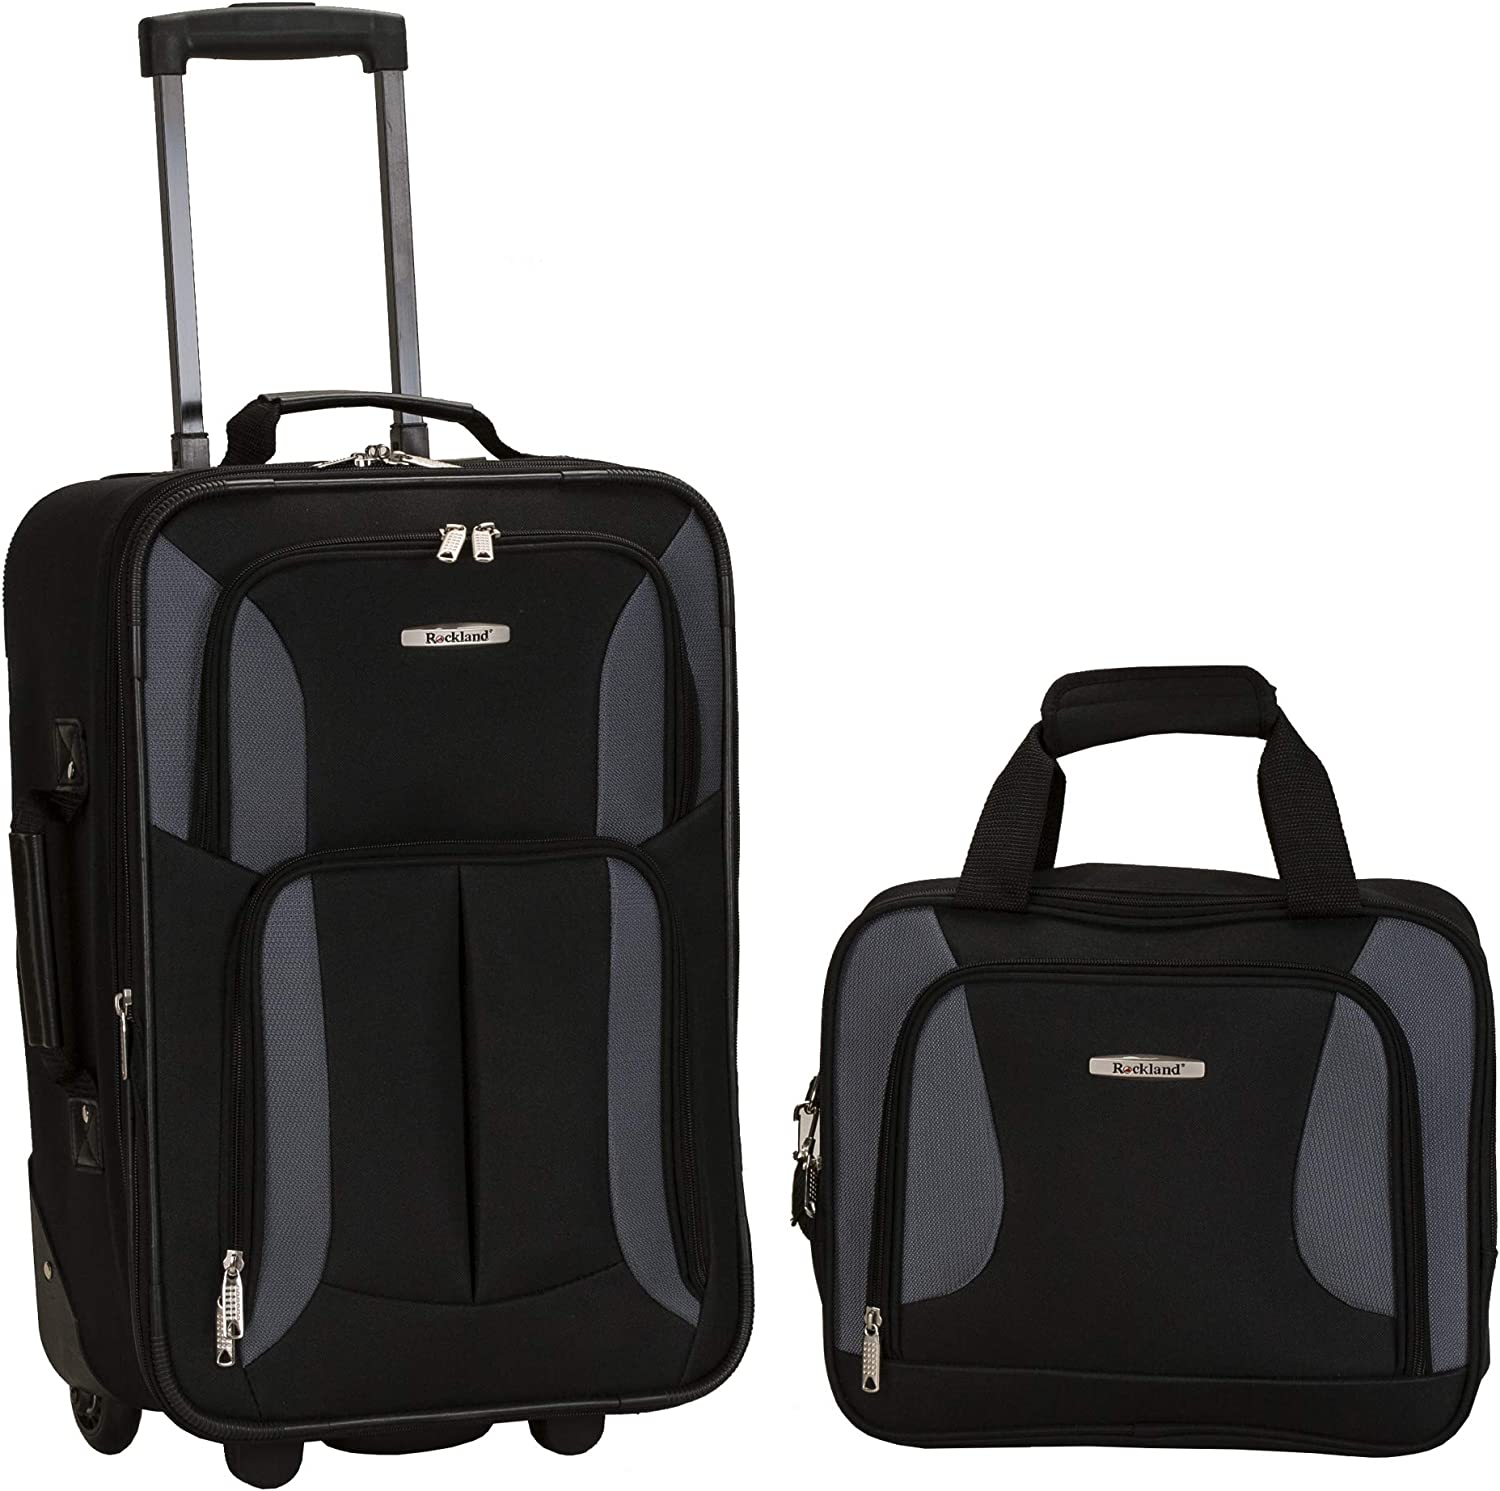 Rockland Fashion Softside Tampa Mall Upright Luggage Don't miss the campaign Set Black Gray 2-Pie